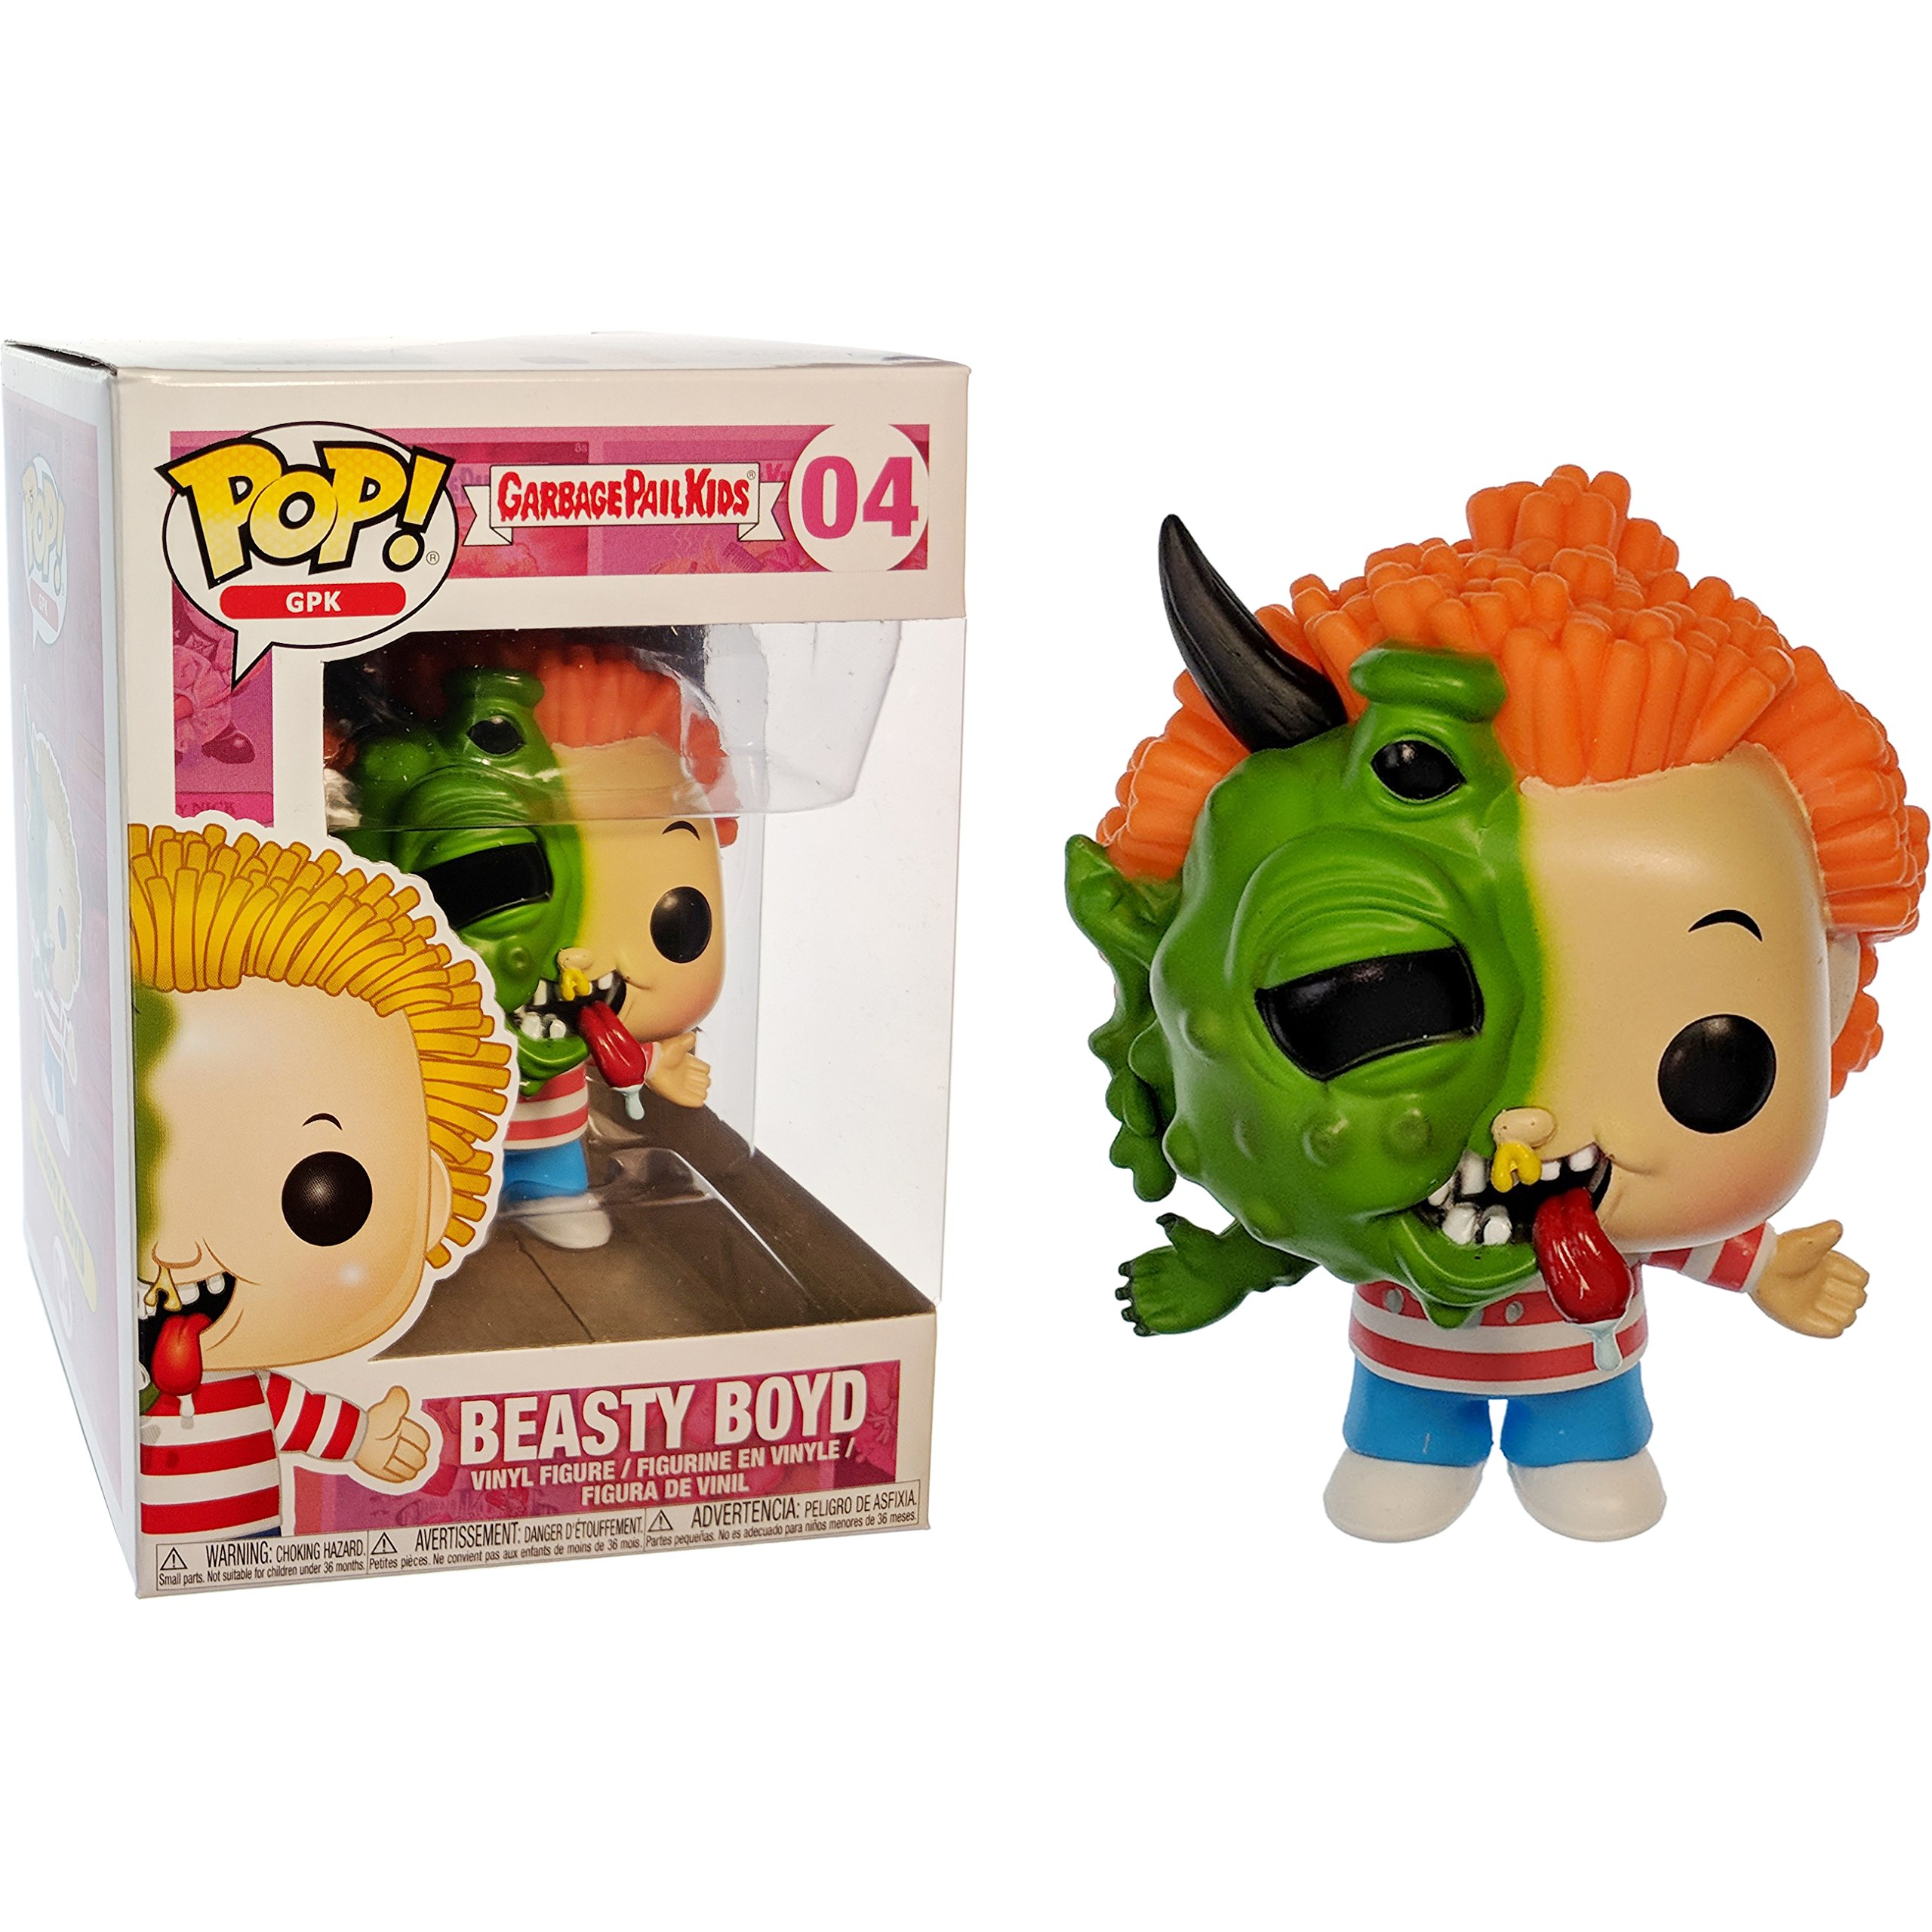 Funko Beastly Boyd POP! GPK x Garbage Pail Kids Vinyl Figure + 1 Video Games Themed Trading Card Bundle [#004 / 26001]